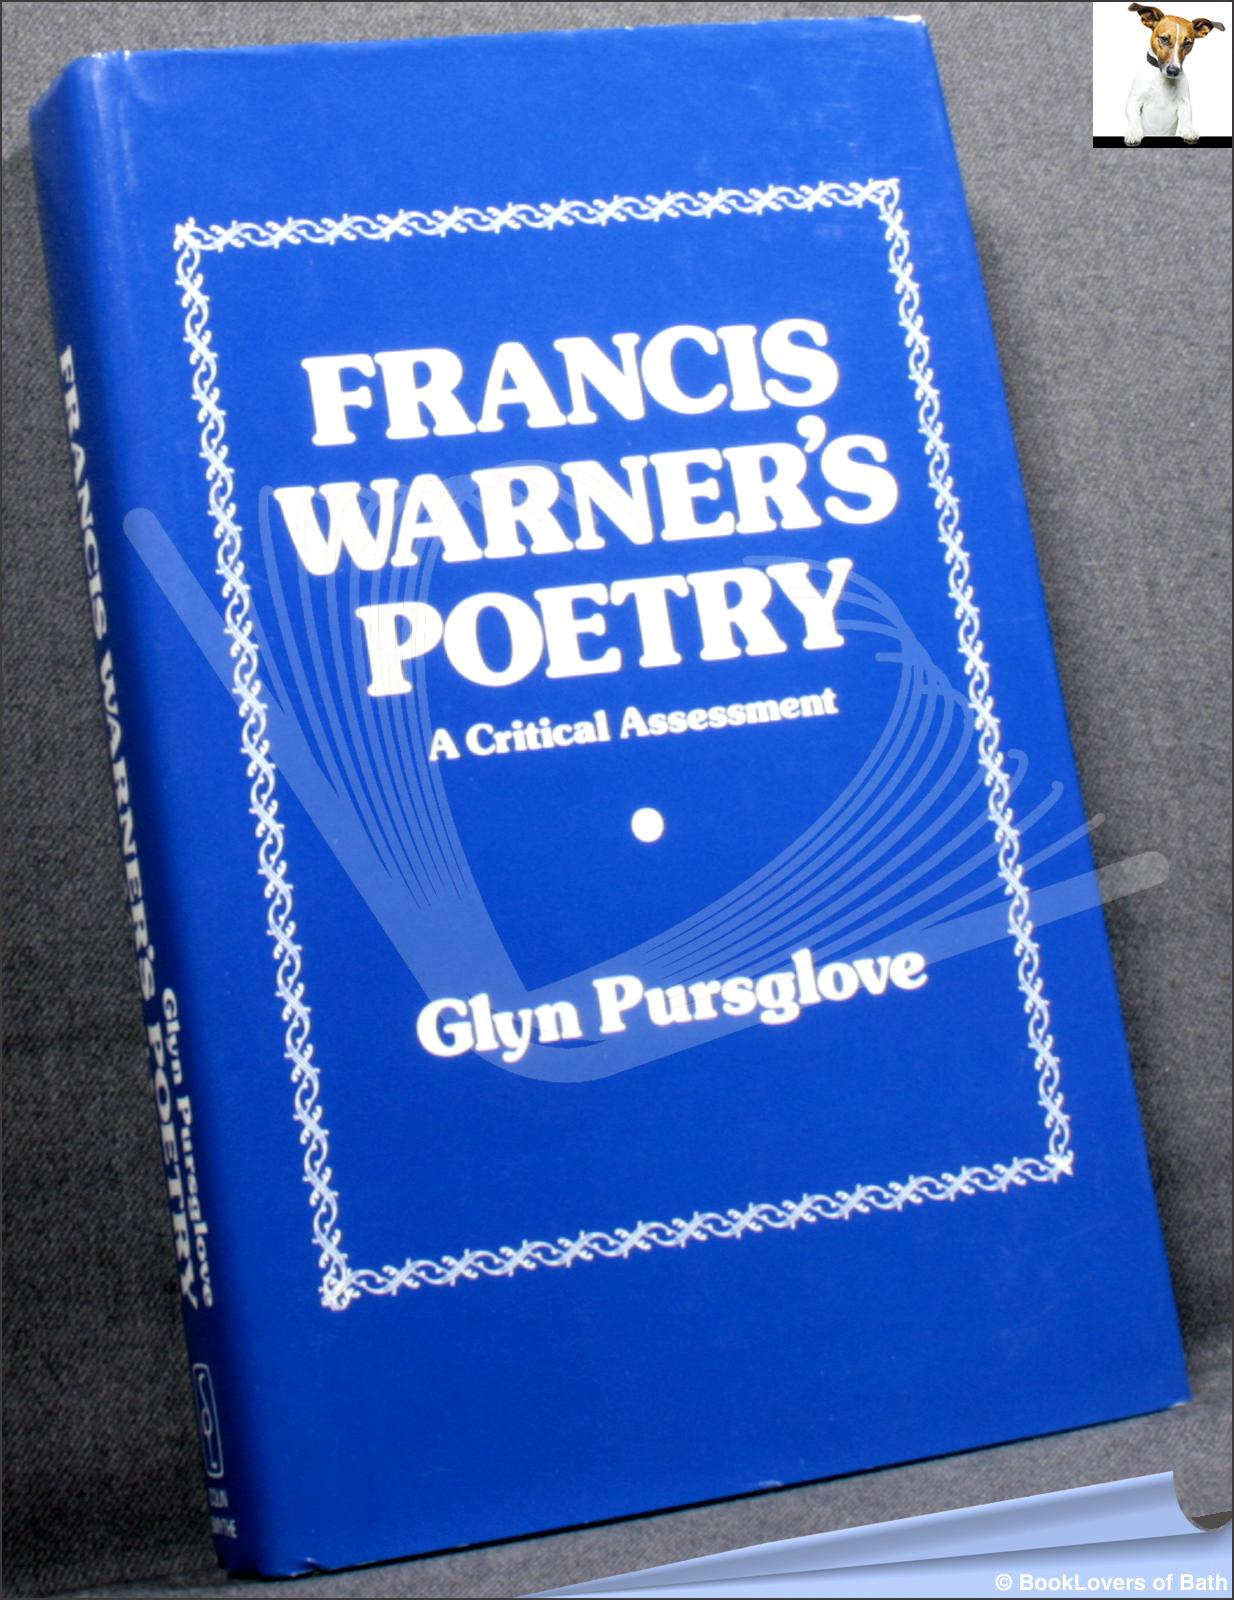 Francis Warner's Poetry: A Critical Assessment - Glyn Pursglove